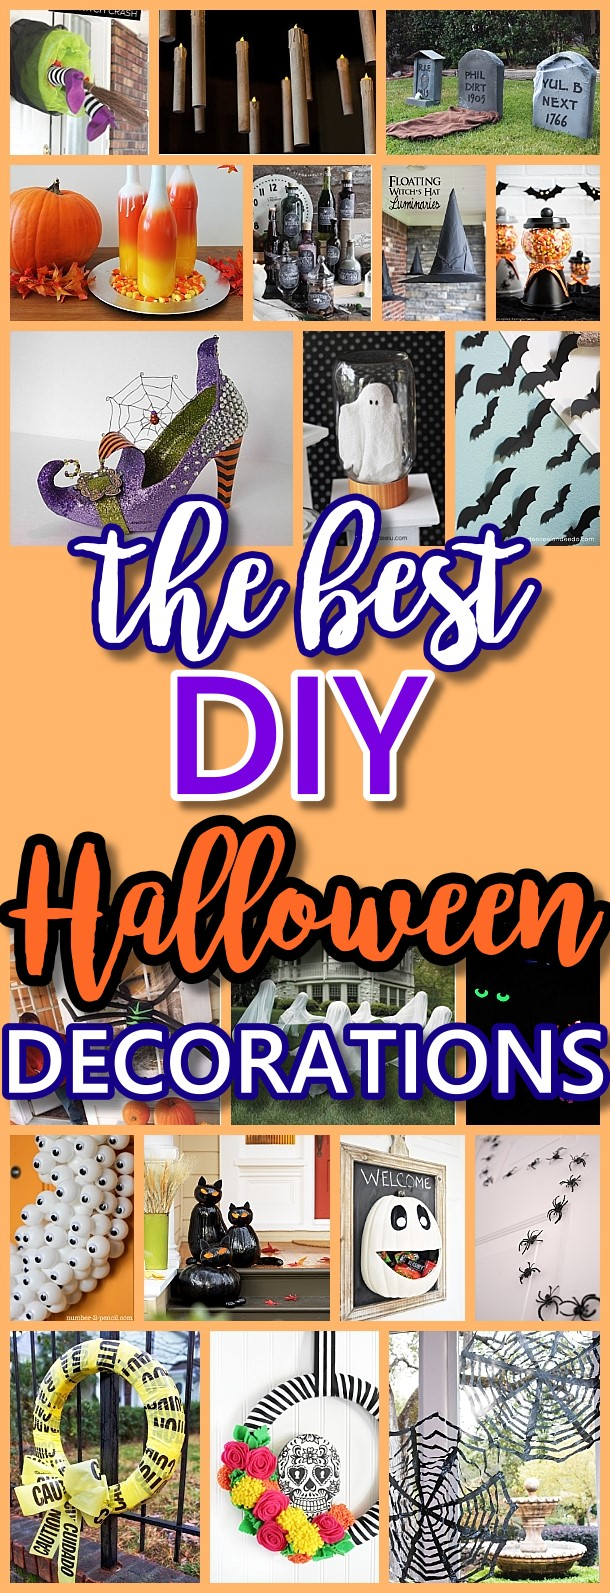 The BEST Do it Yourself Halloween Decorations {Spooktacular Halloween DIYs, Handmade Crafts and Projects!}